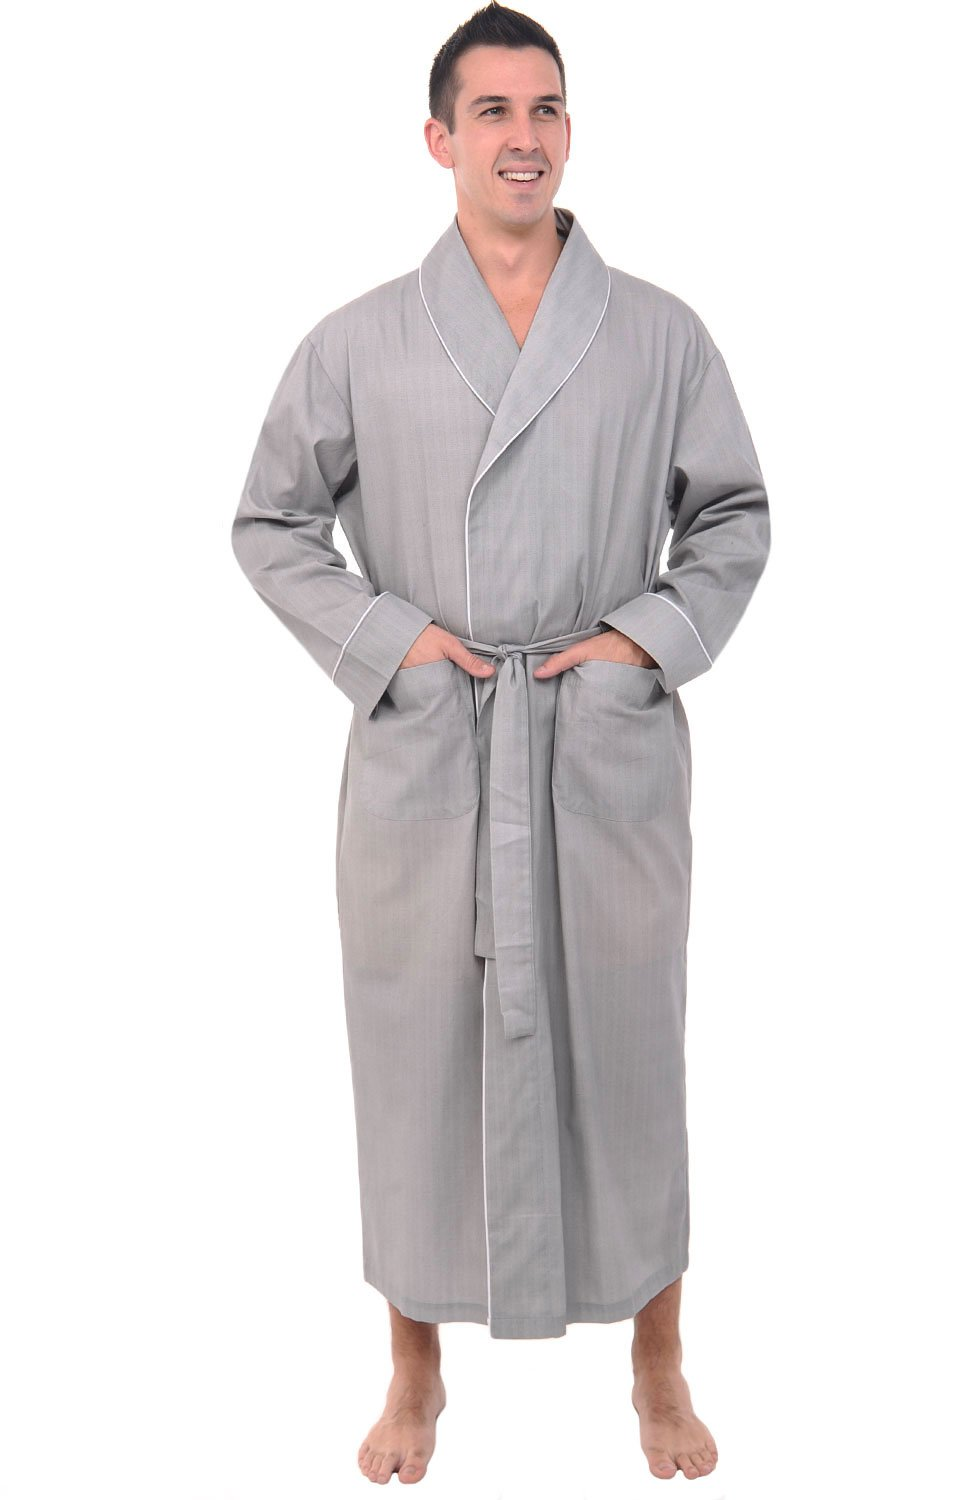 Alexander Del Rossa Mens Cotton Robe, Lightweight Woven Bathrobe, XL Grey Striped (A0715R61XL)